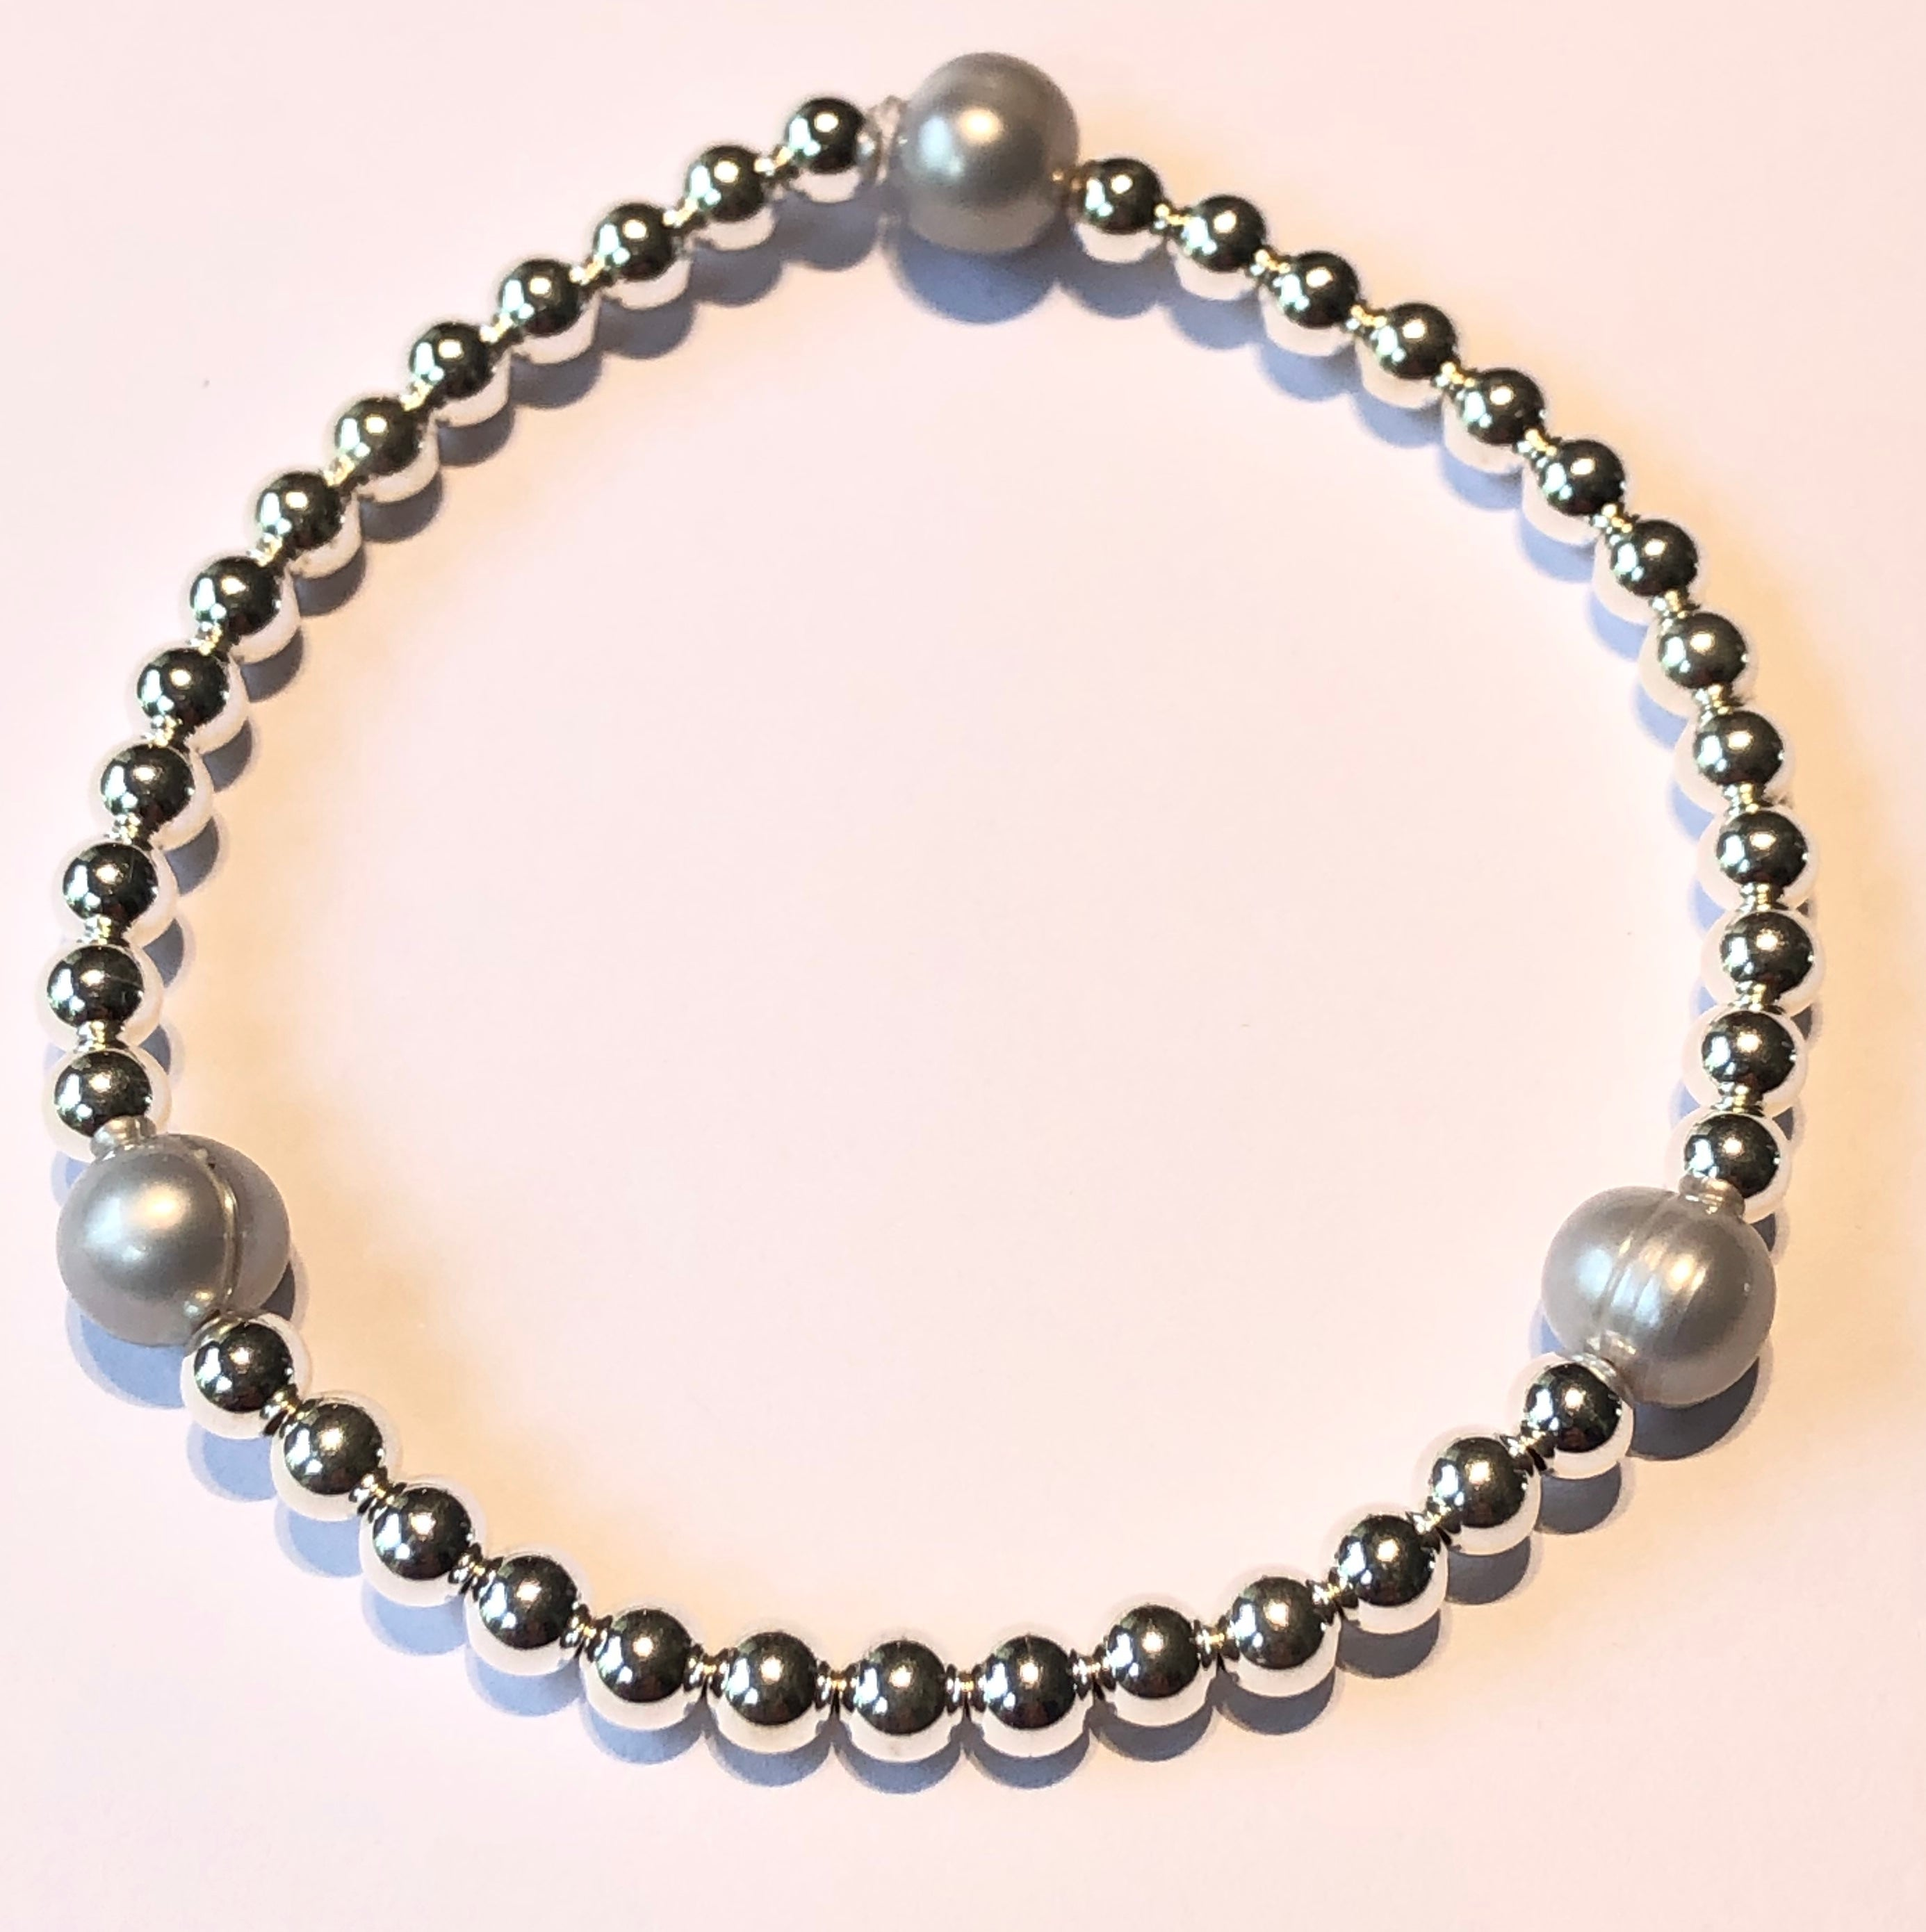 4mm Sterling Silver Bead Bracelet with 3 8mm Fresh Water Pearls